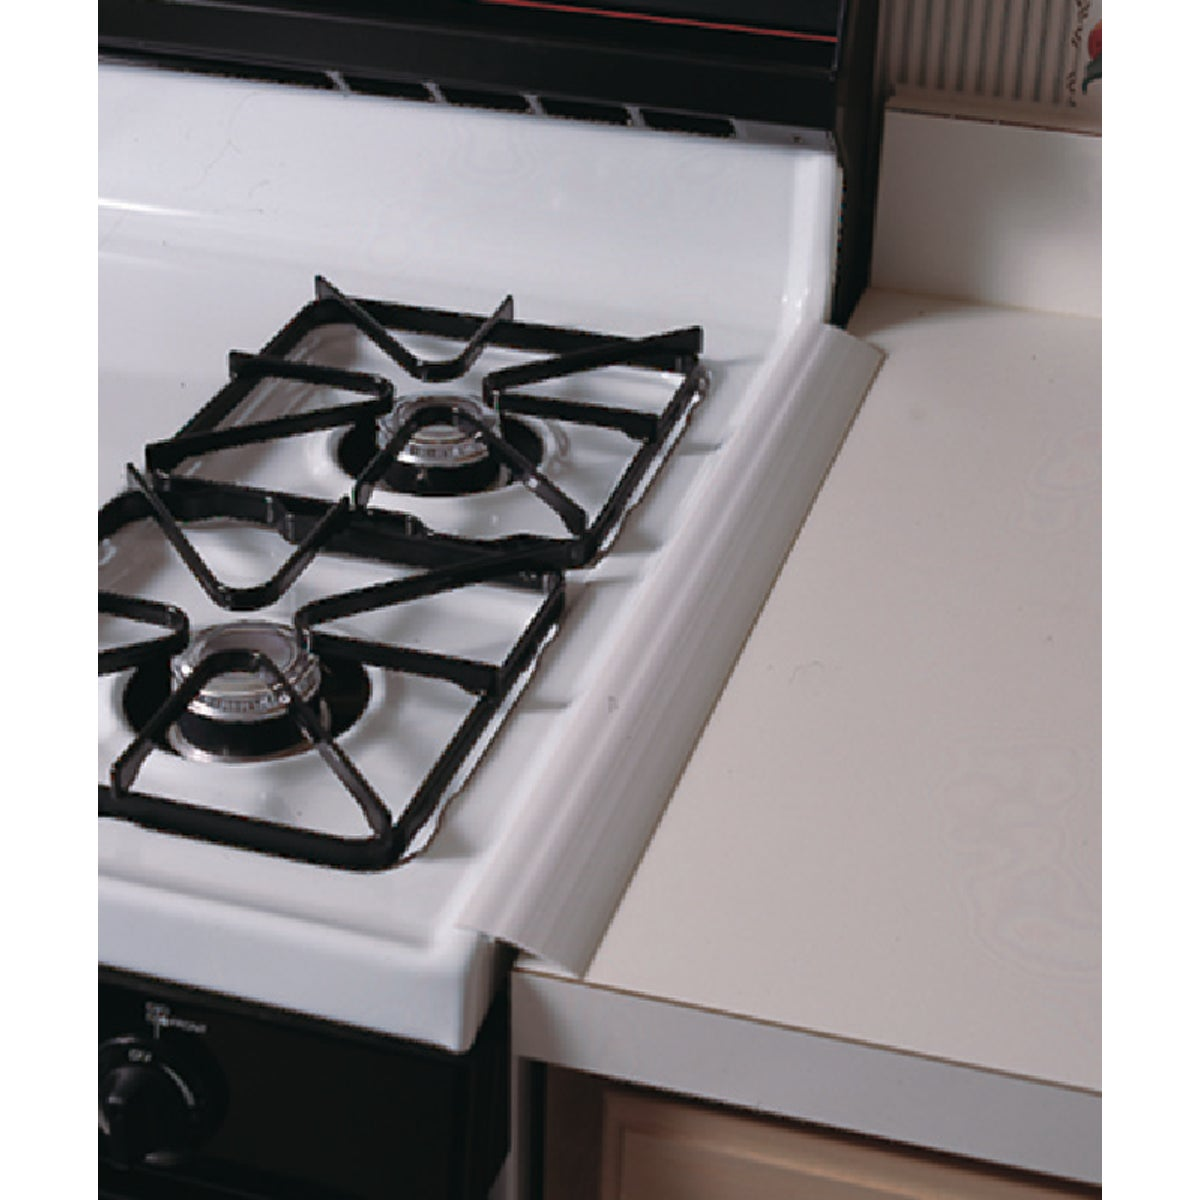 CHRM STOVE GAP PROTECTOR - 687 by Range Kleen Mfg Inc